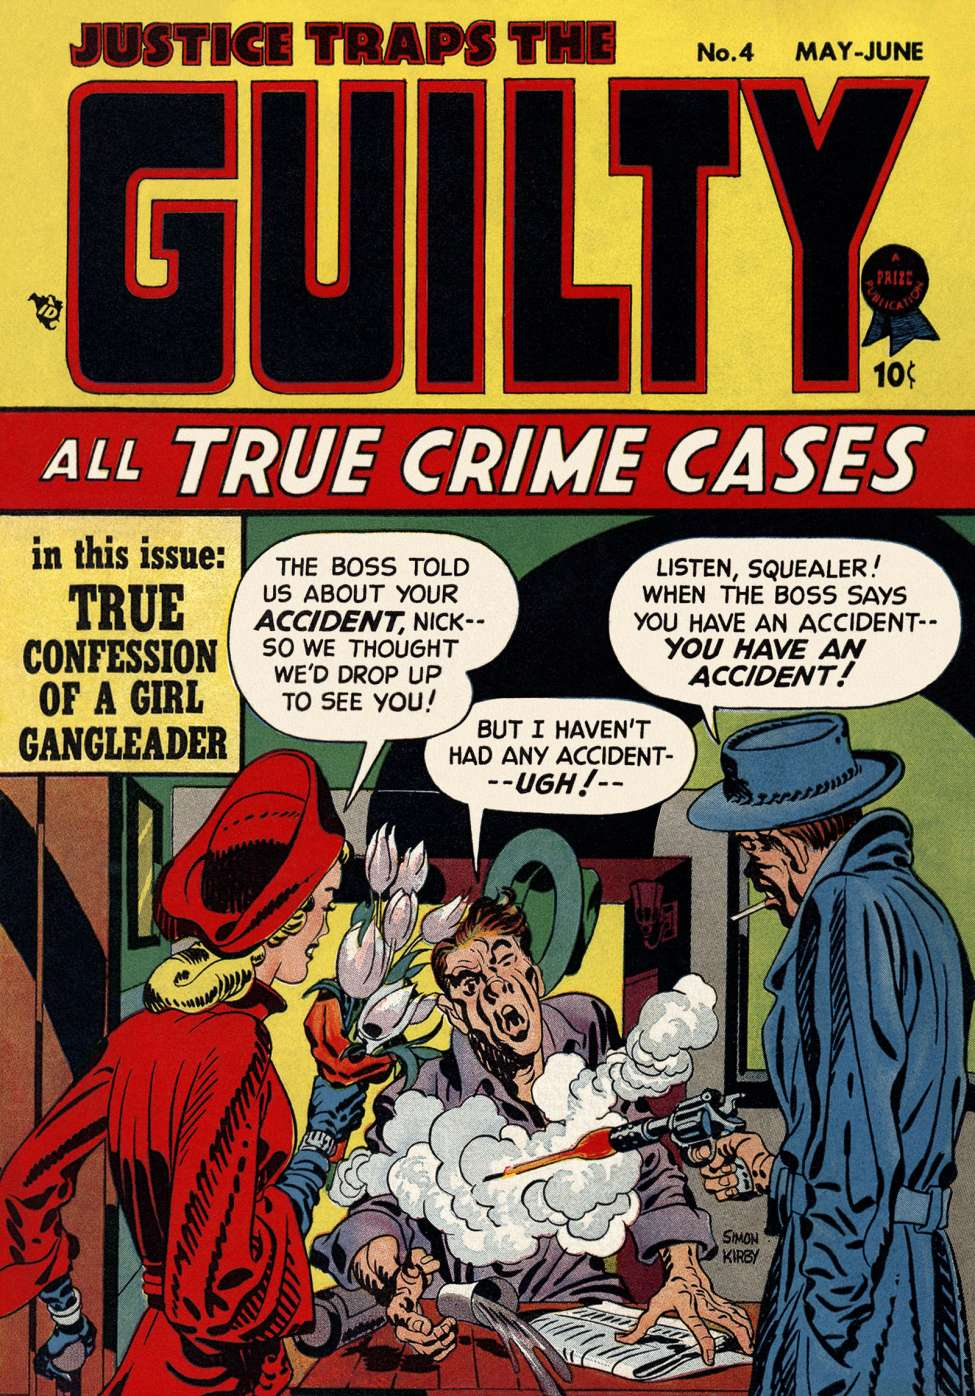 Justice Traps the Guilty #4, Prize Comics